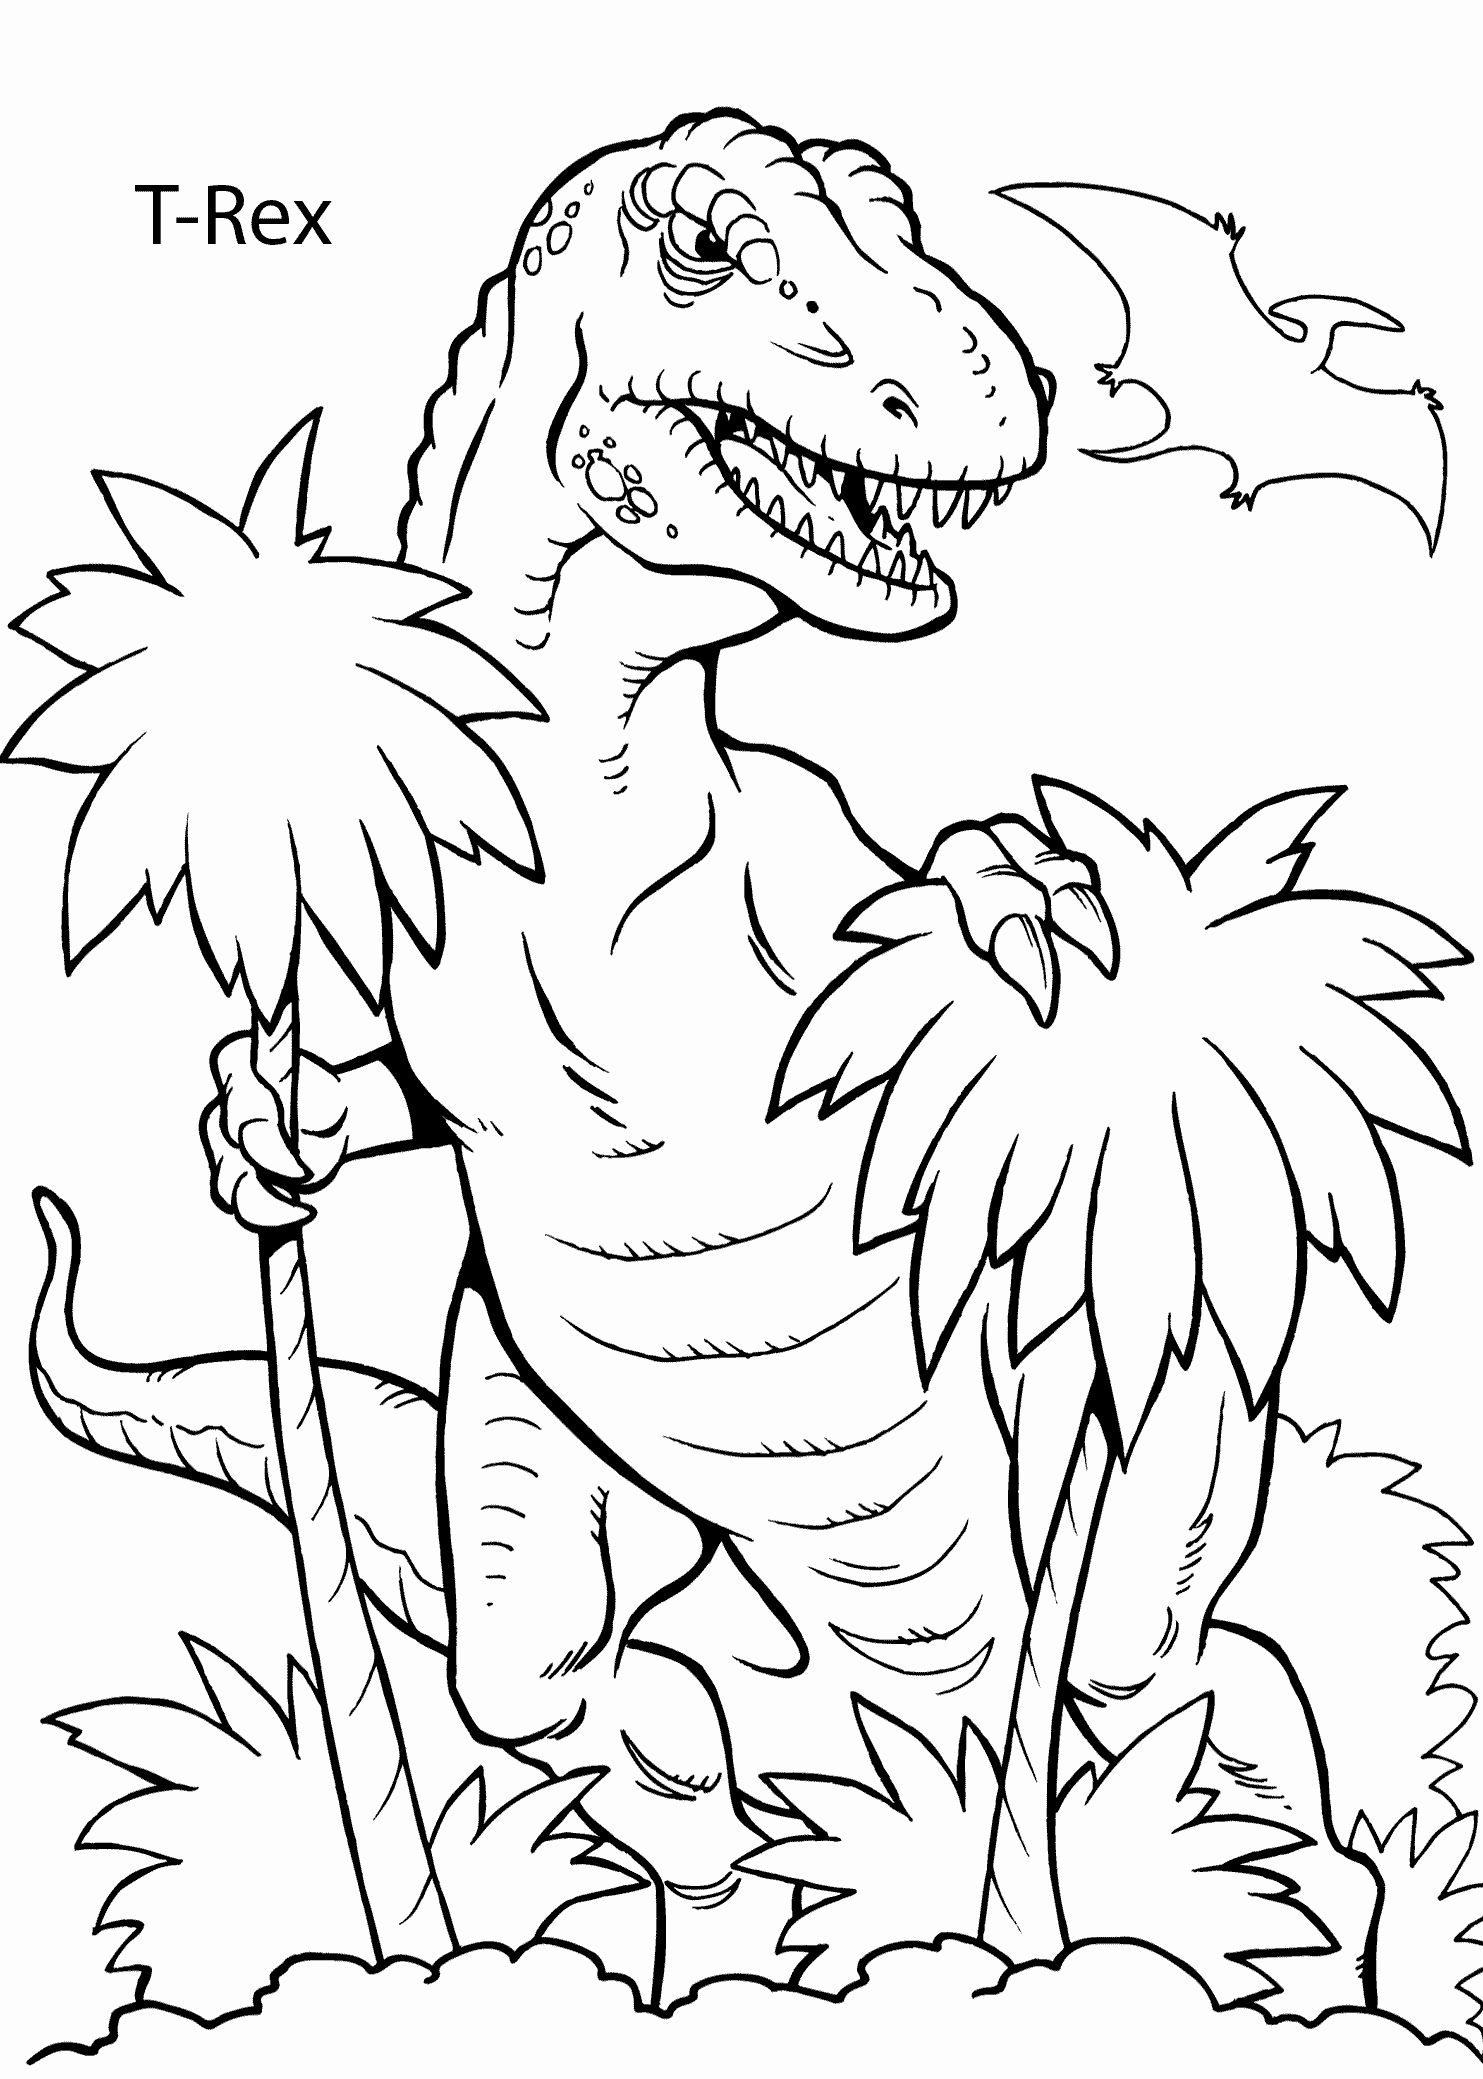 Dinosaur Free Coloring Pages Best Of Pin By Get Highit On Coloring Pages Spring Coloring Pages Dinosaur Coloring Sheets Dinosaur Coloring Pages